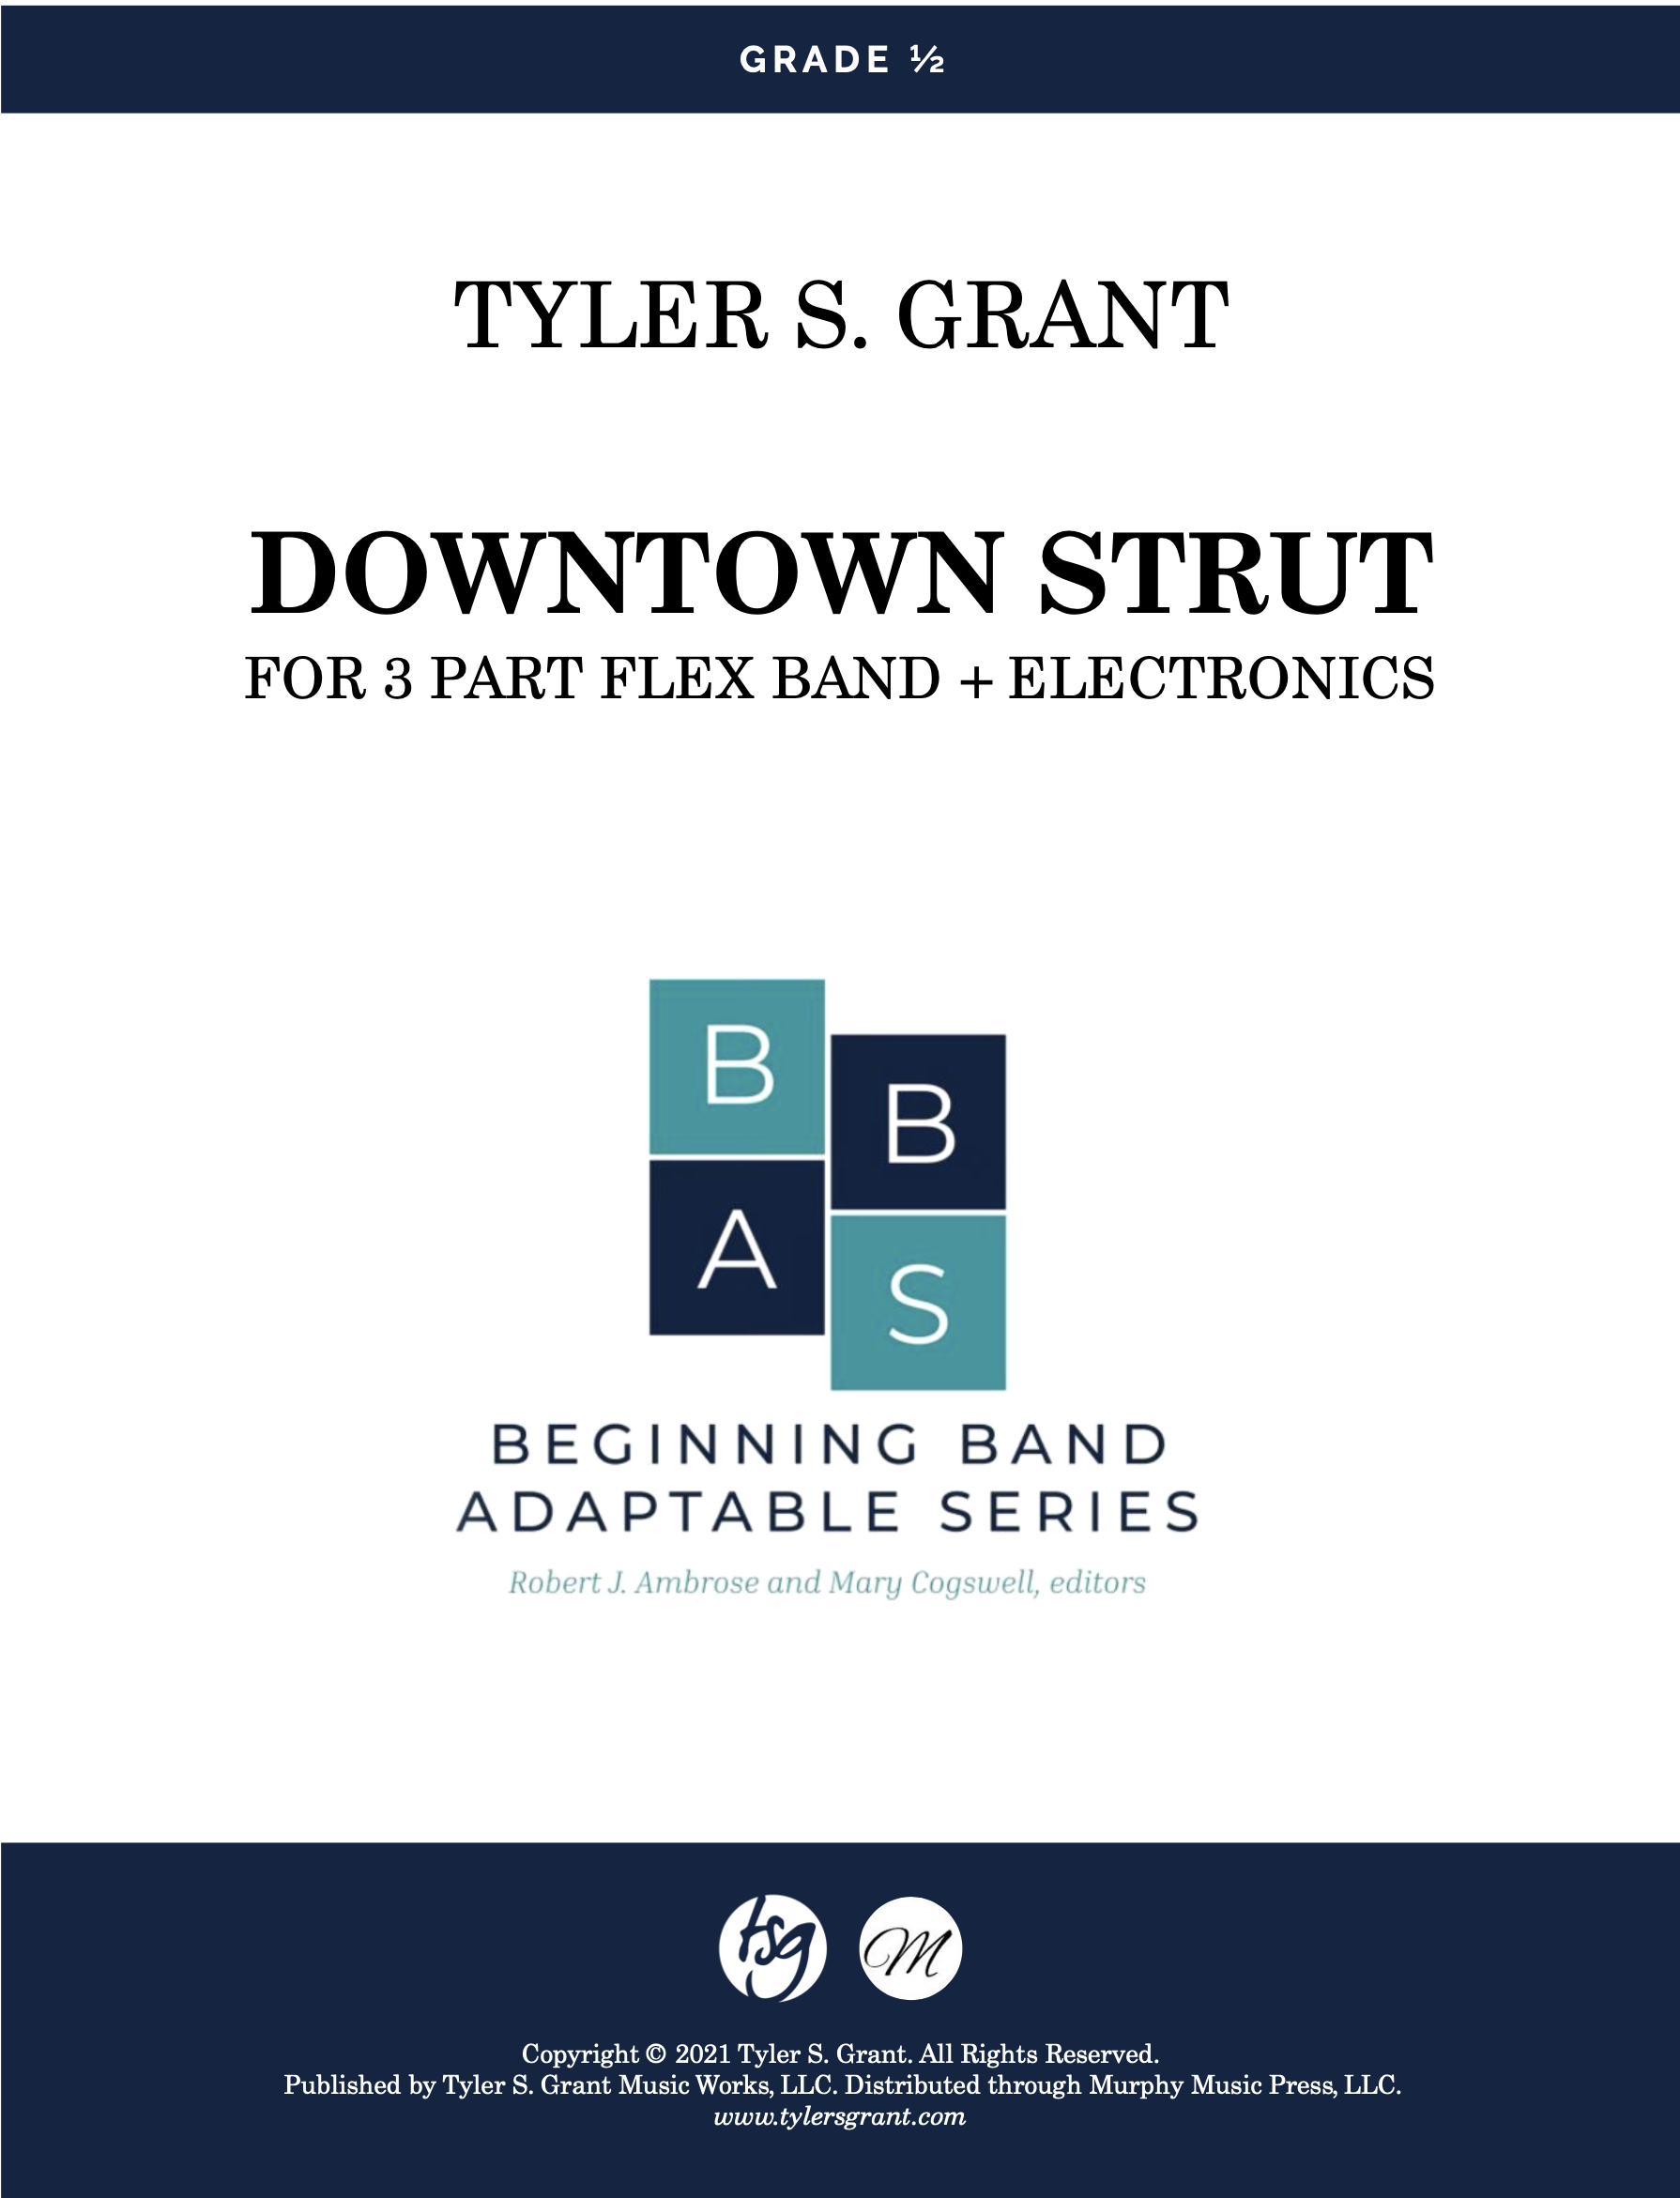 Downtown Strut by Tyler S. Grant